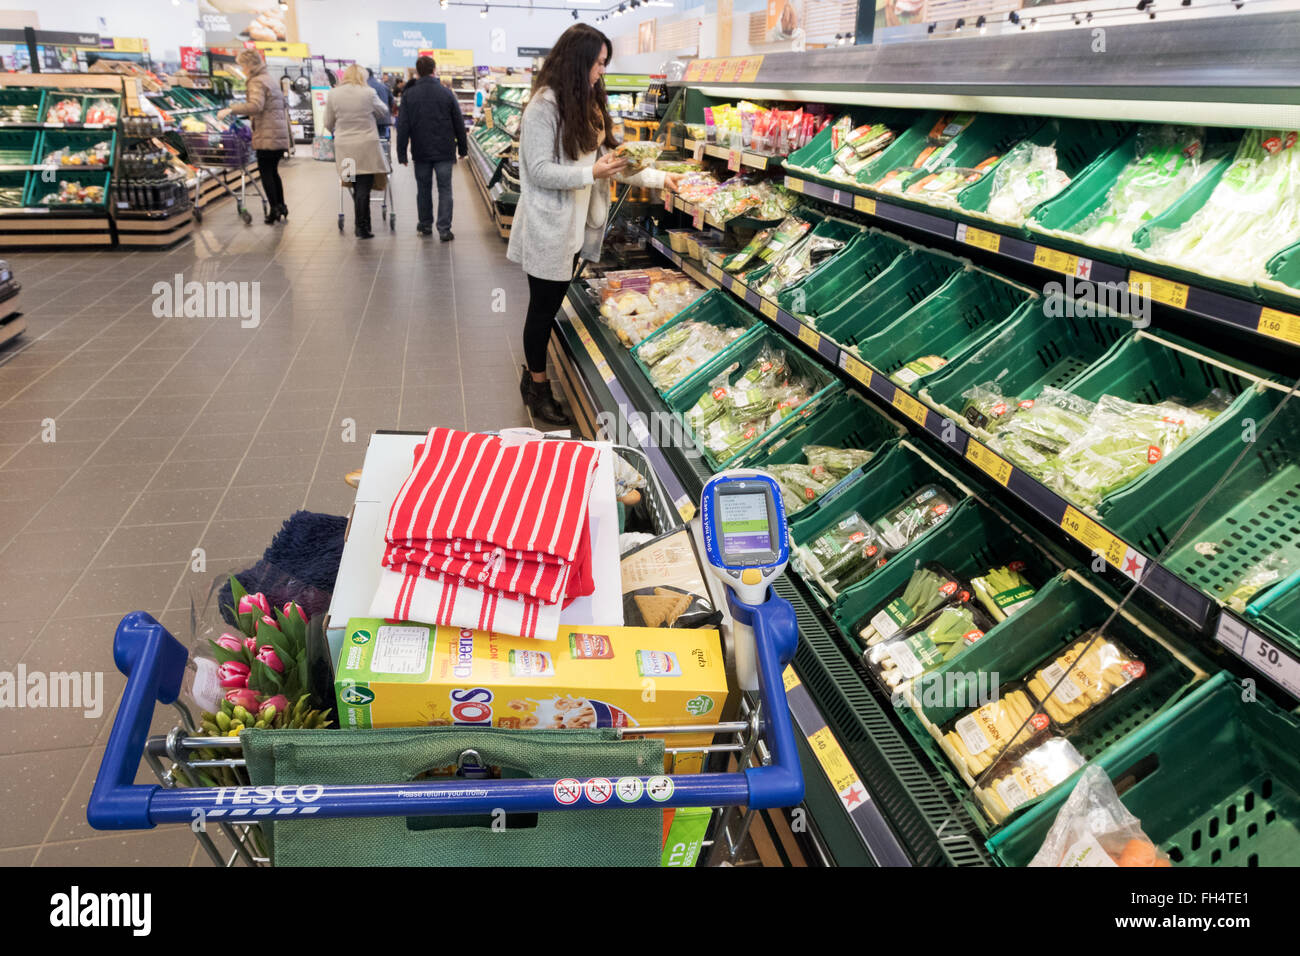 A full shopping trolley in the fruit and vegetables aisle, Tesco supermarket Suffolk UK - Stock Image